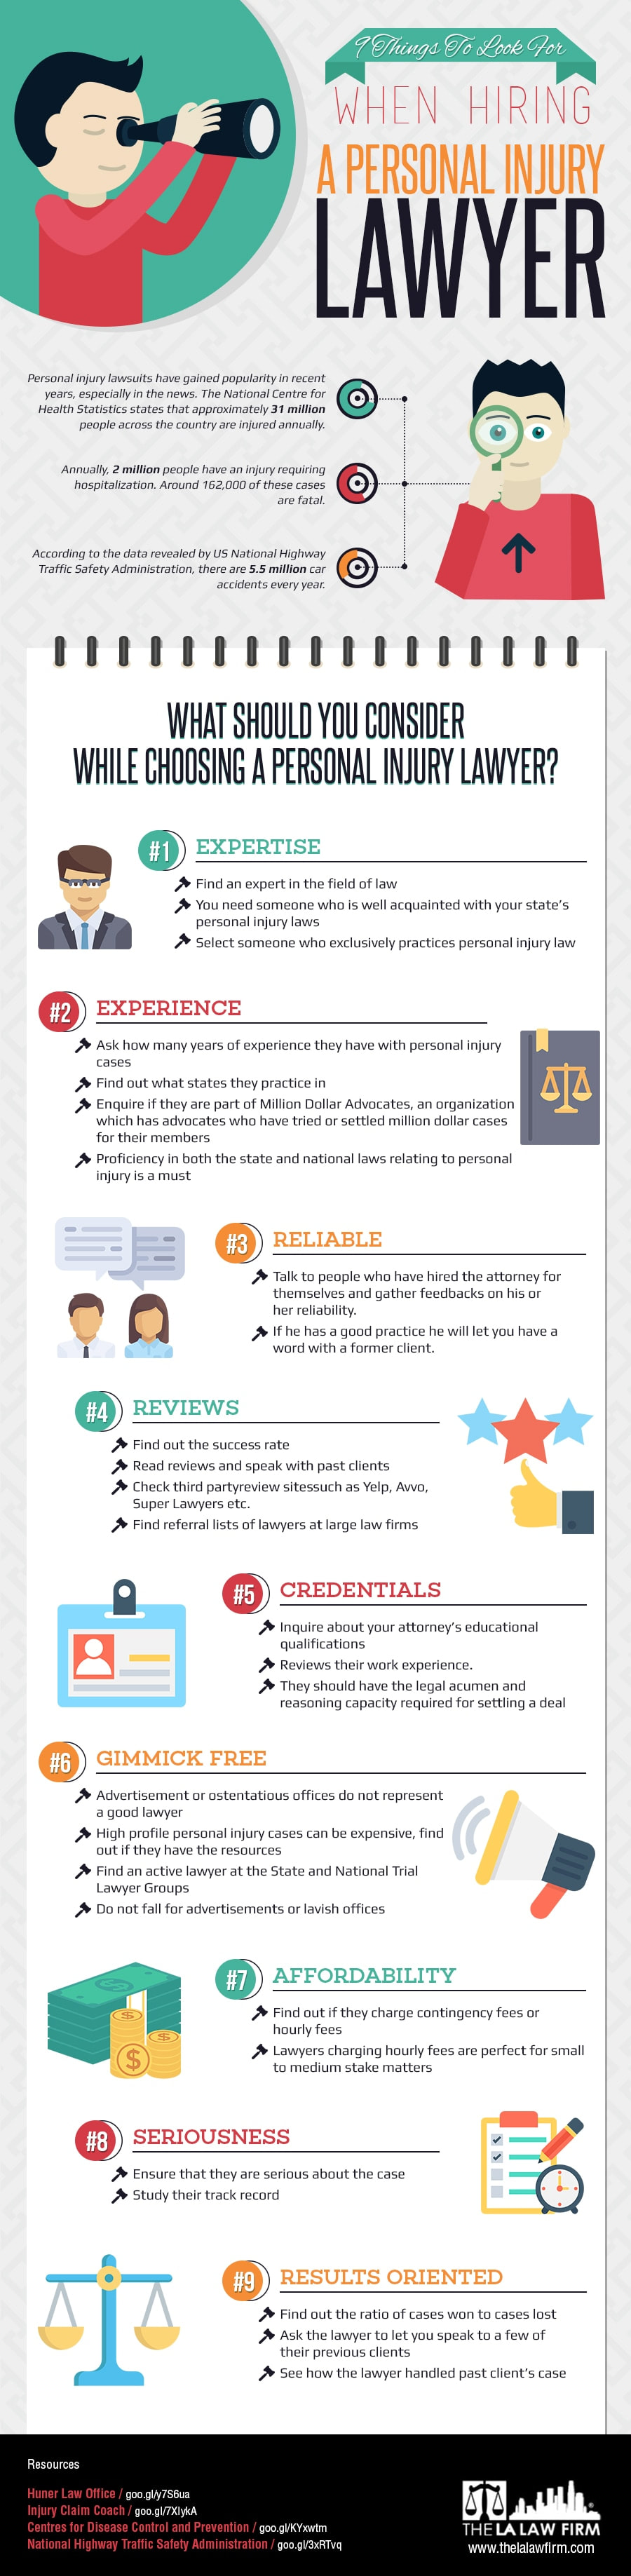 personal-injury-lawyer-infographic.jpg